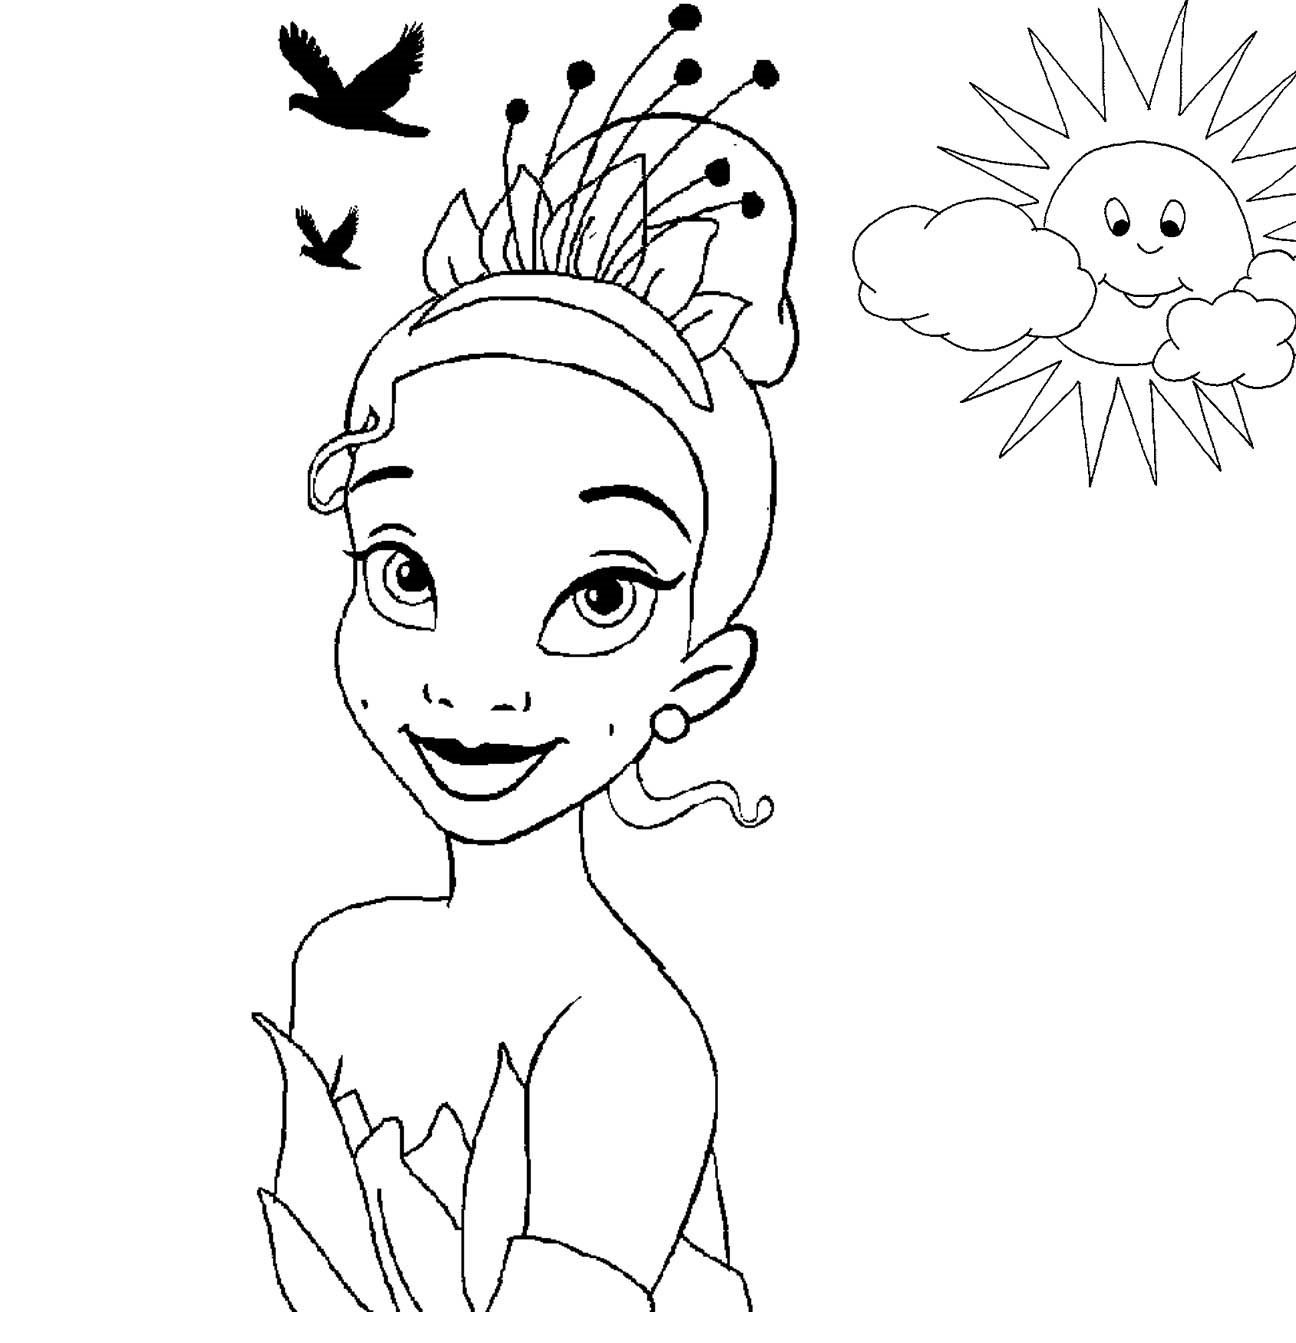 coloring pages for girls disney princess coloring pages for girls free large images coloring for disney pages girls